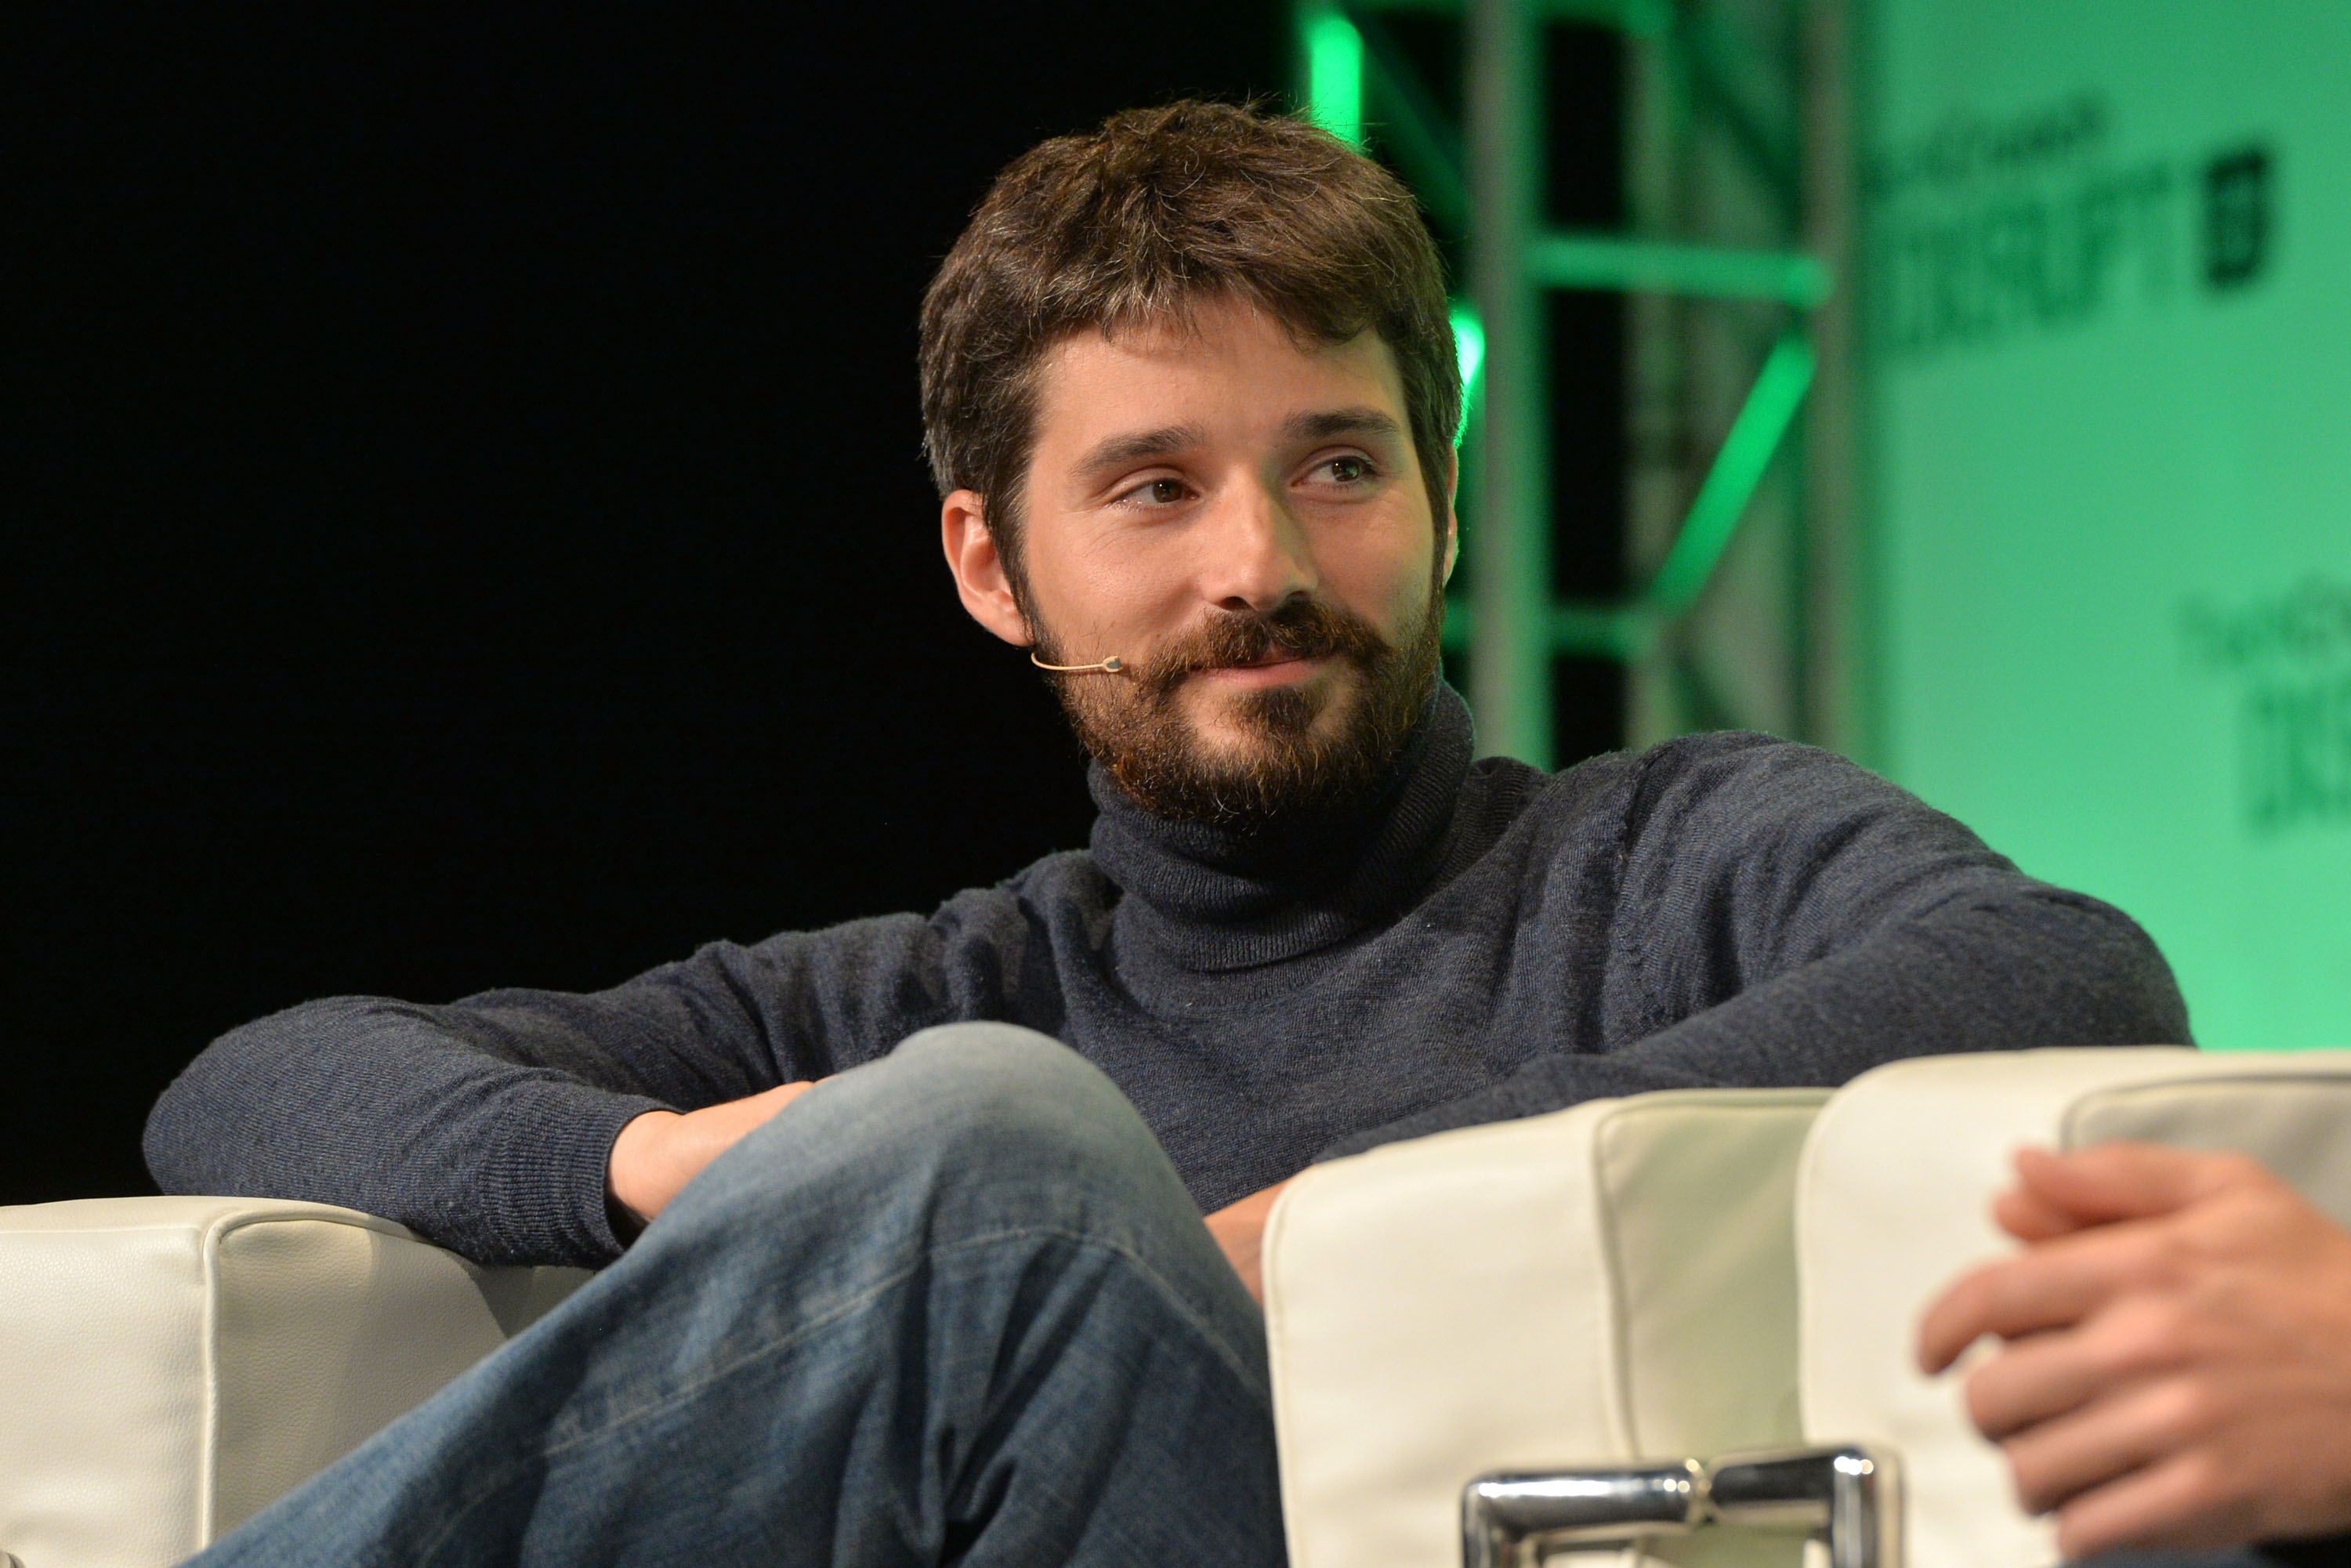 Solomon Hykes leaves Docker, the company he founded | TechCrunch